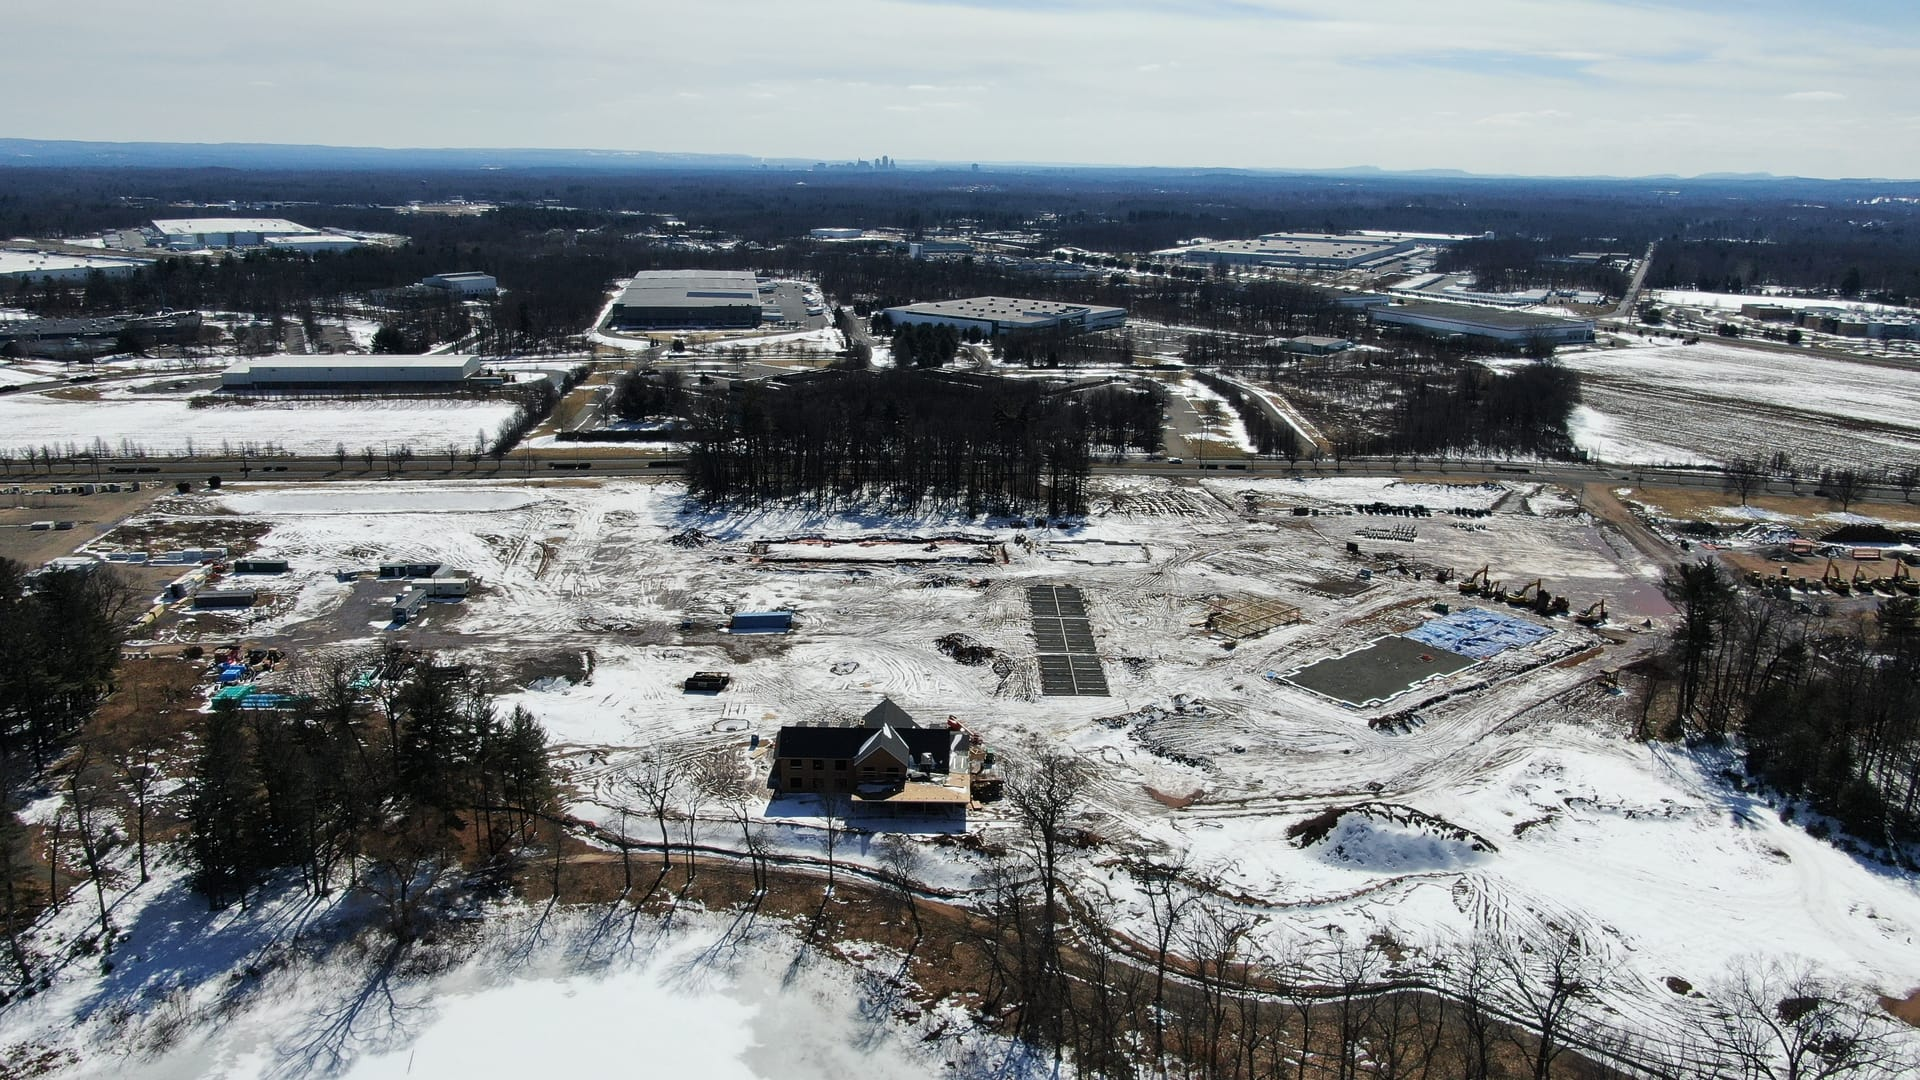 aerial view of construction site winter